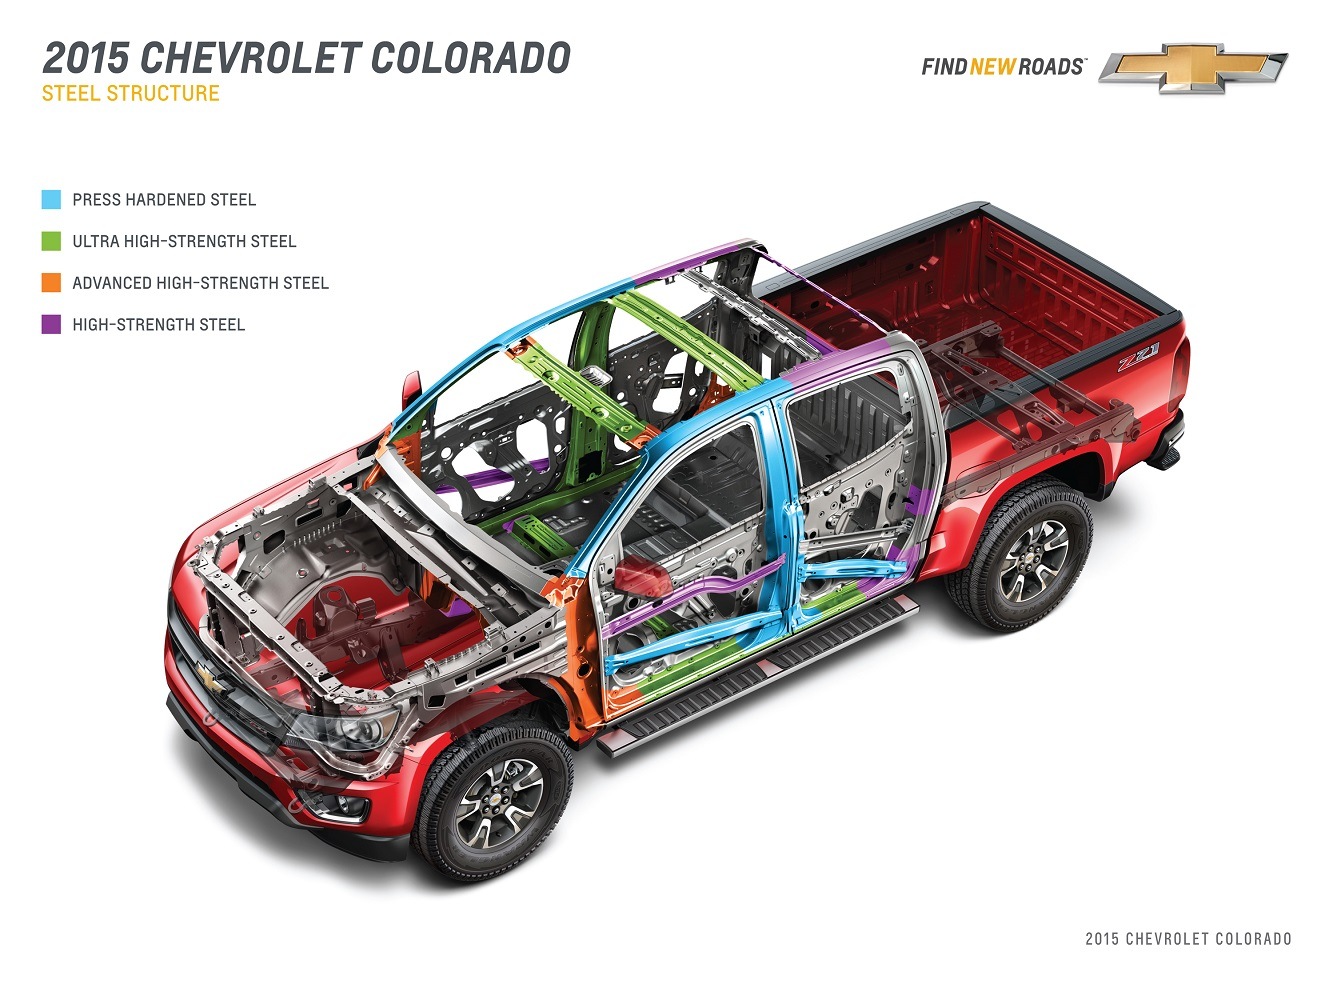 2015 Colorado weight reduction techniques